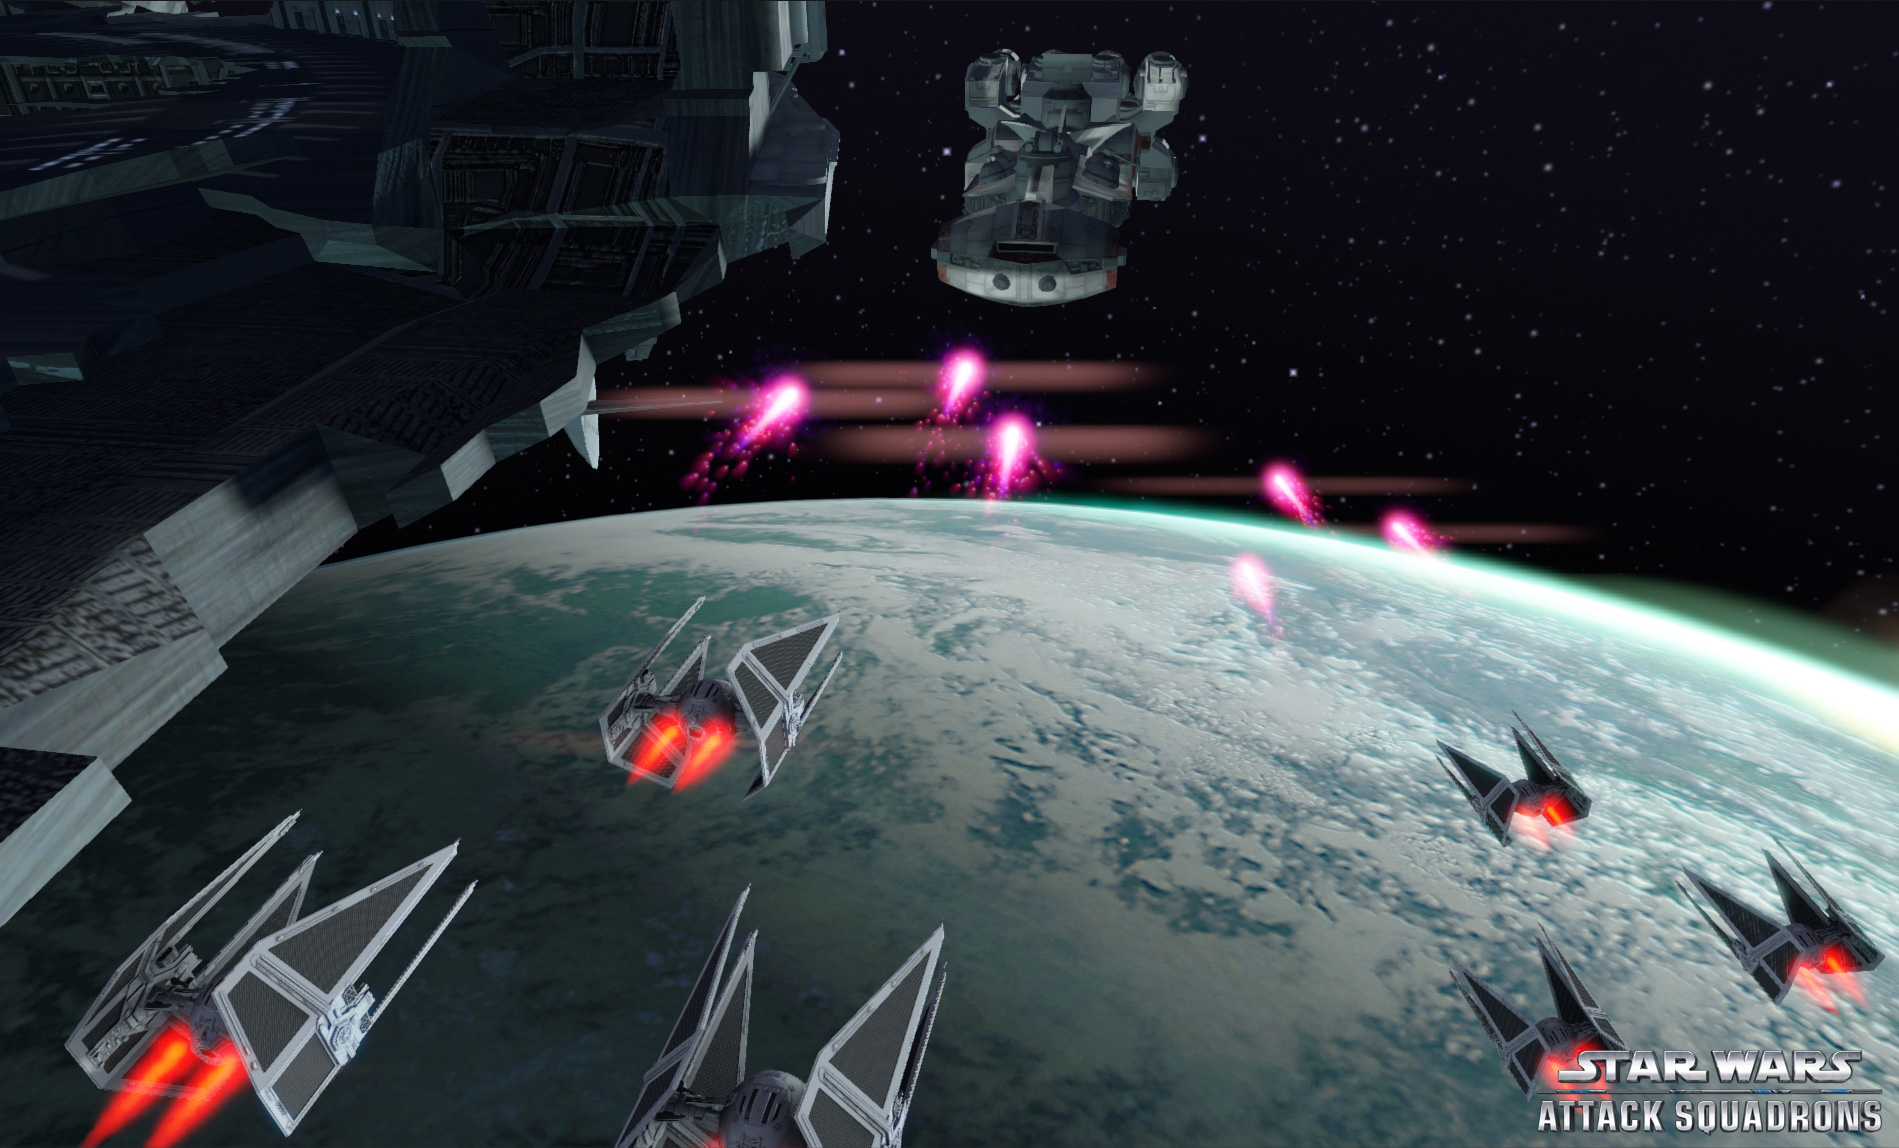 Star_wars_attack_squadrons_6